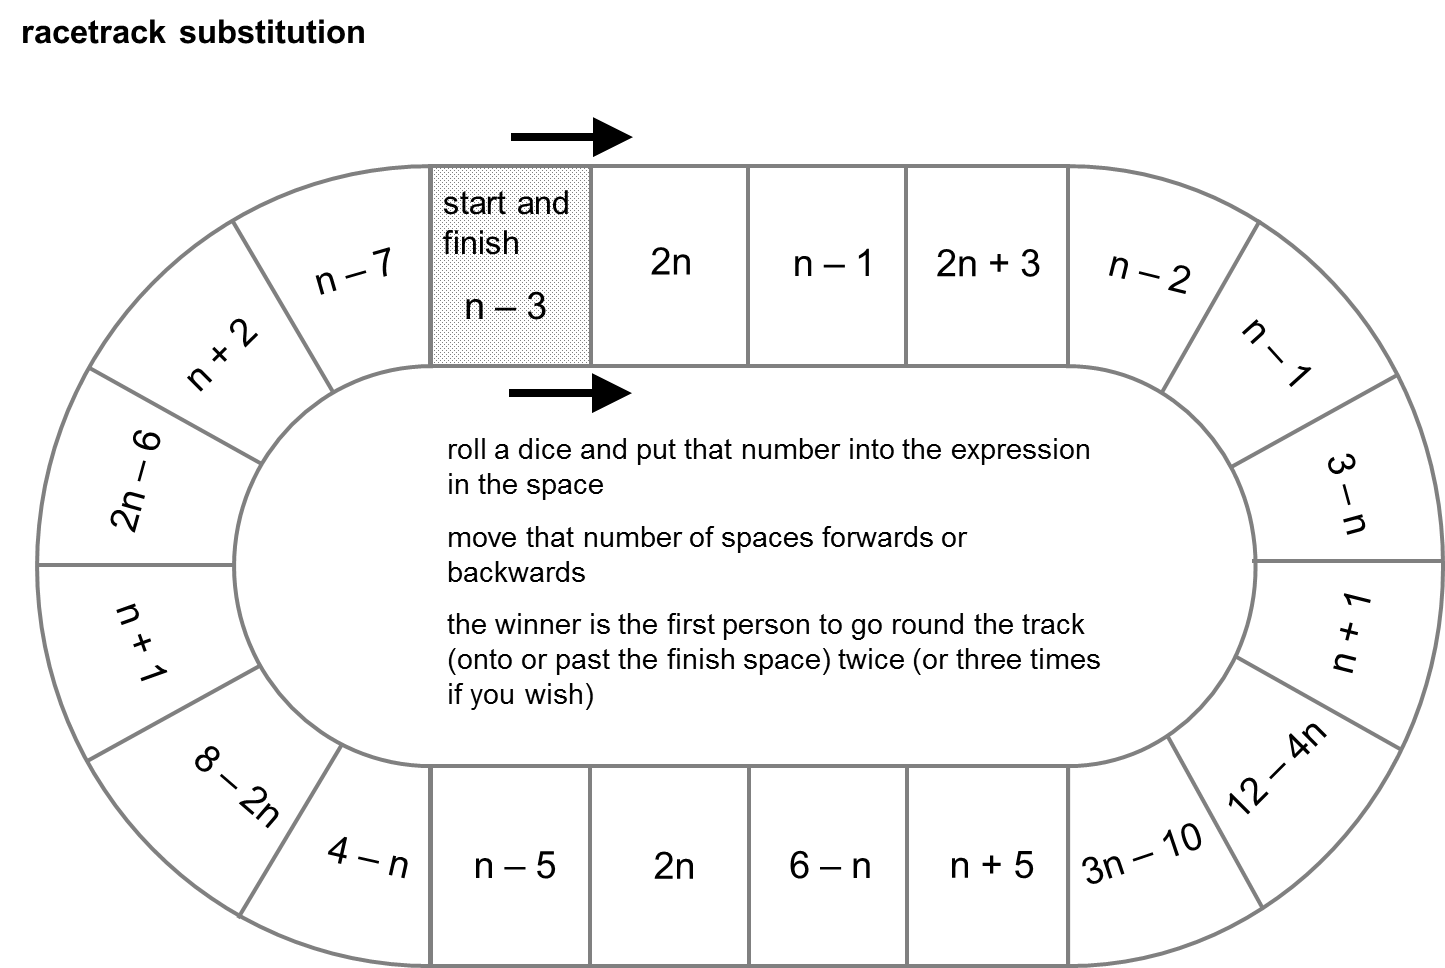 Median Don Steward Mathematics Teaching Racetrack Substitution Game